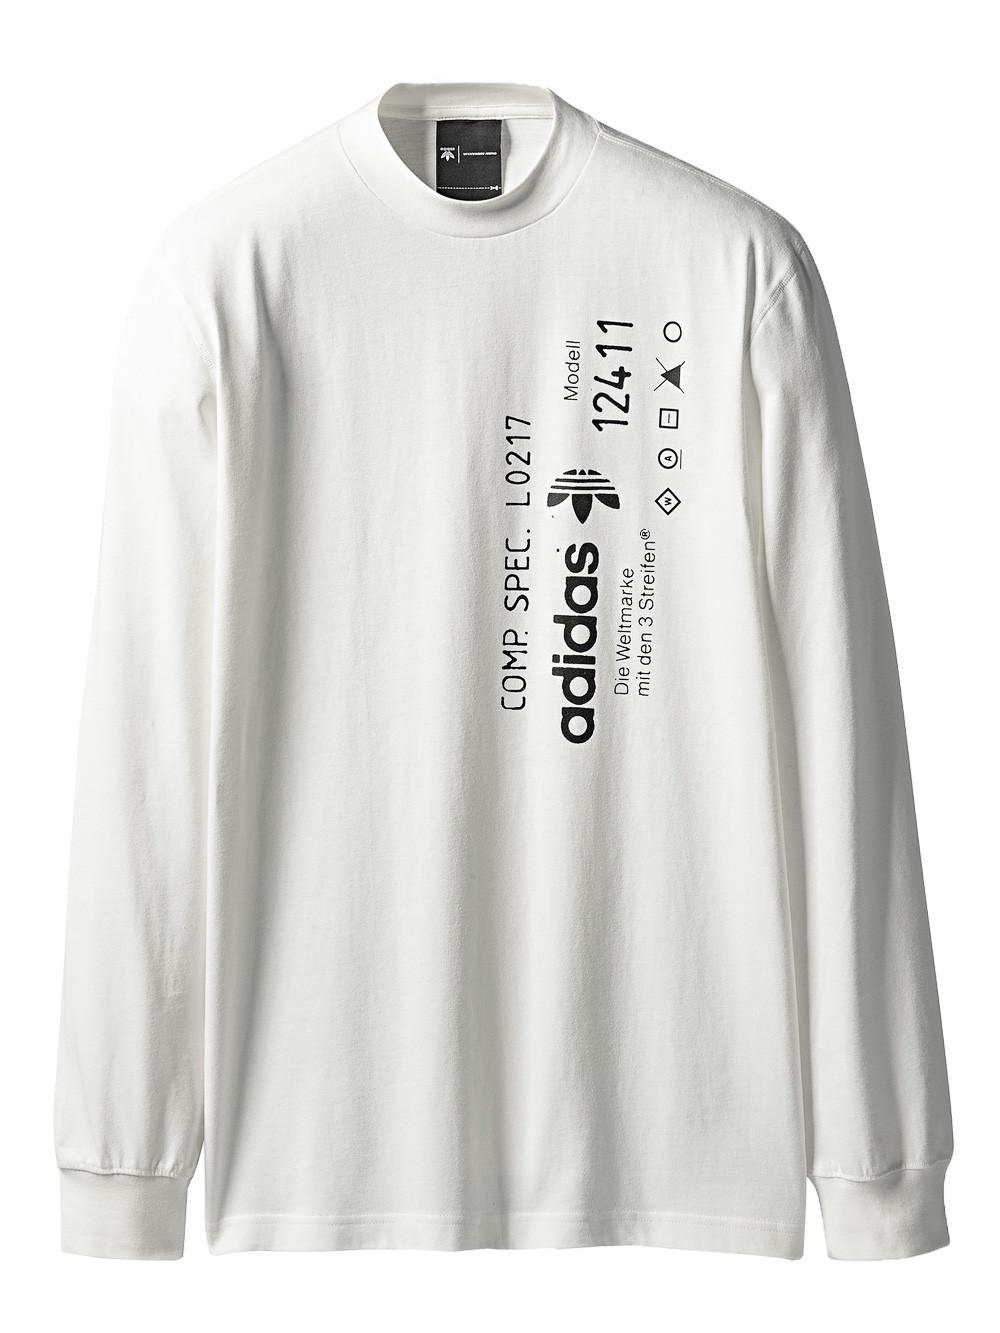 a87dc3cb8dd7 Adidas Originals By Alexander Wang Printed Jersey Long Sleeve T-Shirt In  White